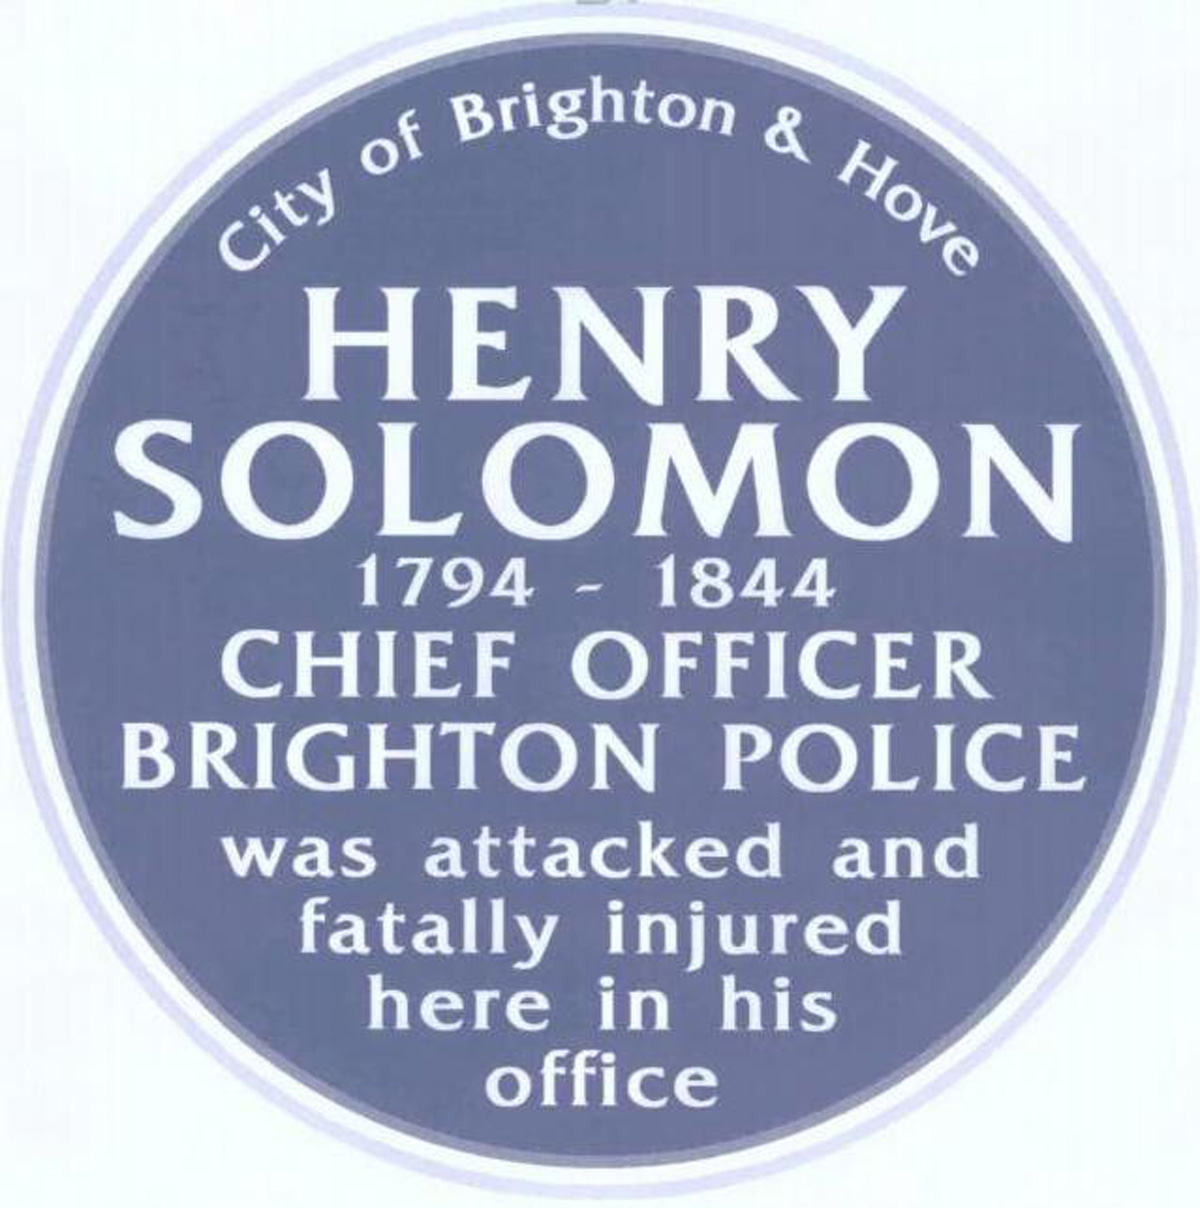 Henry Soloman's blue plaque